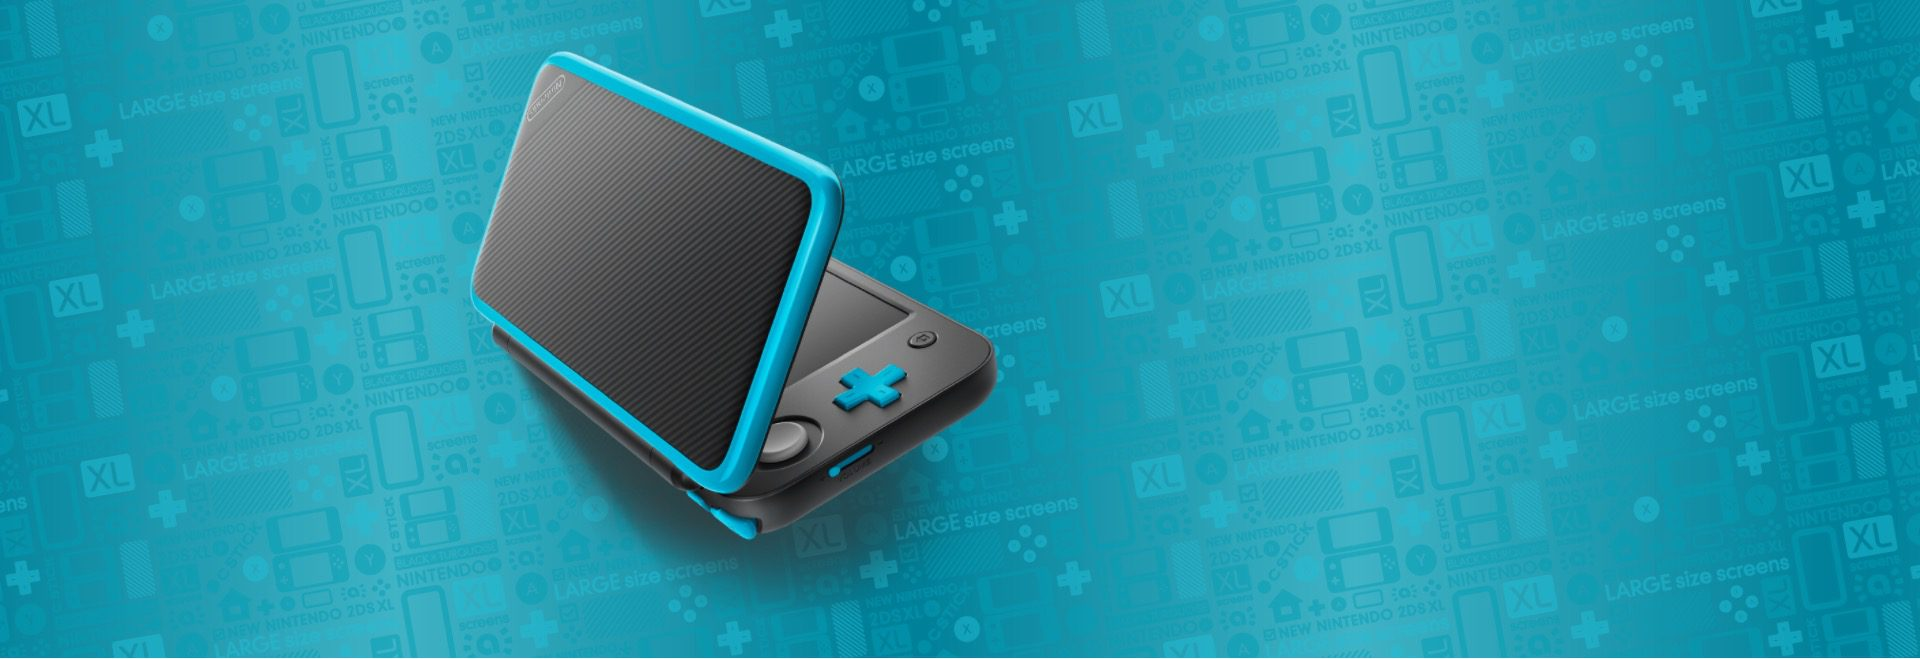 Nintendo 2DS XL hero